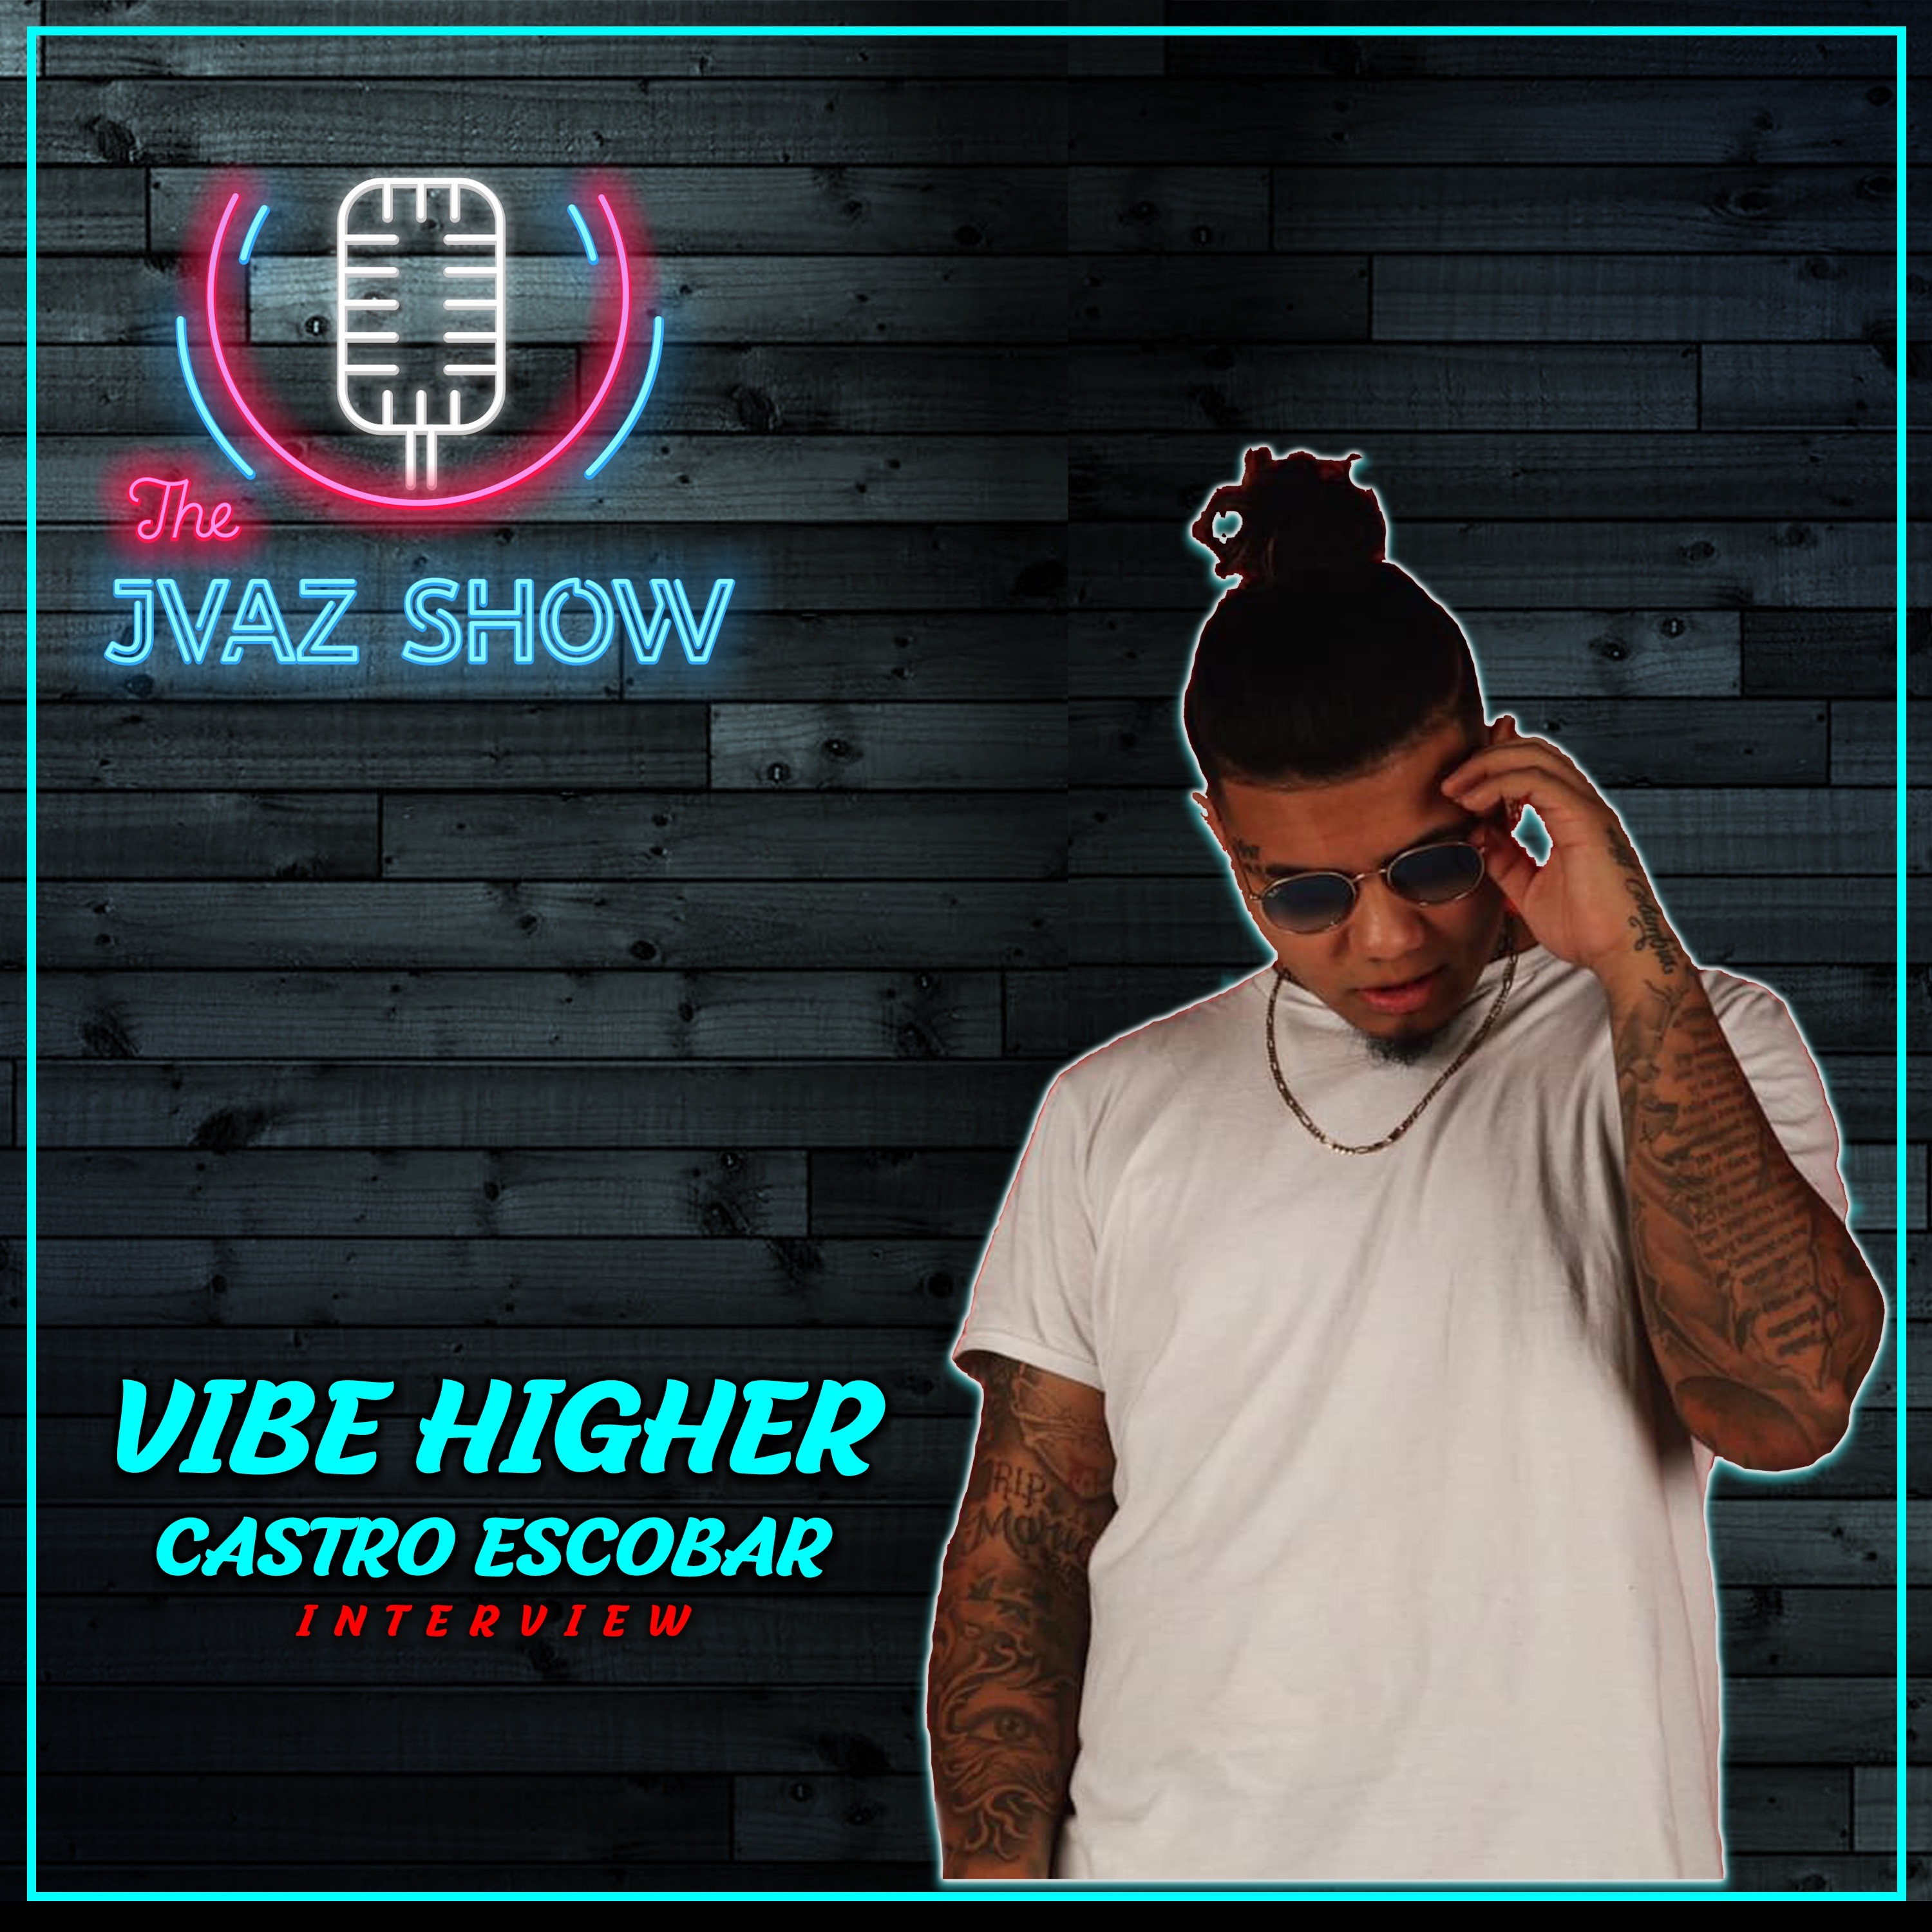 The JVaz Show: A Music & Entertainment Podcast | Podbay